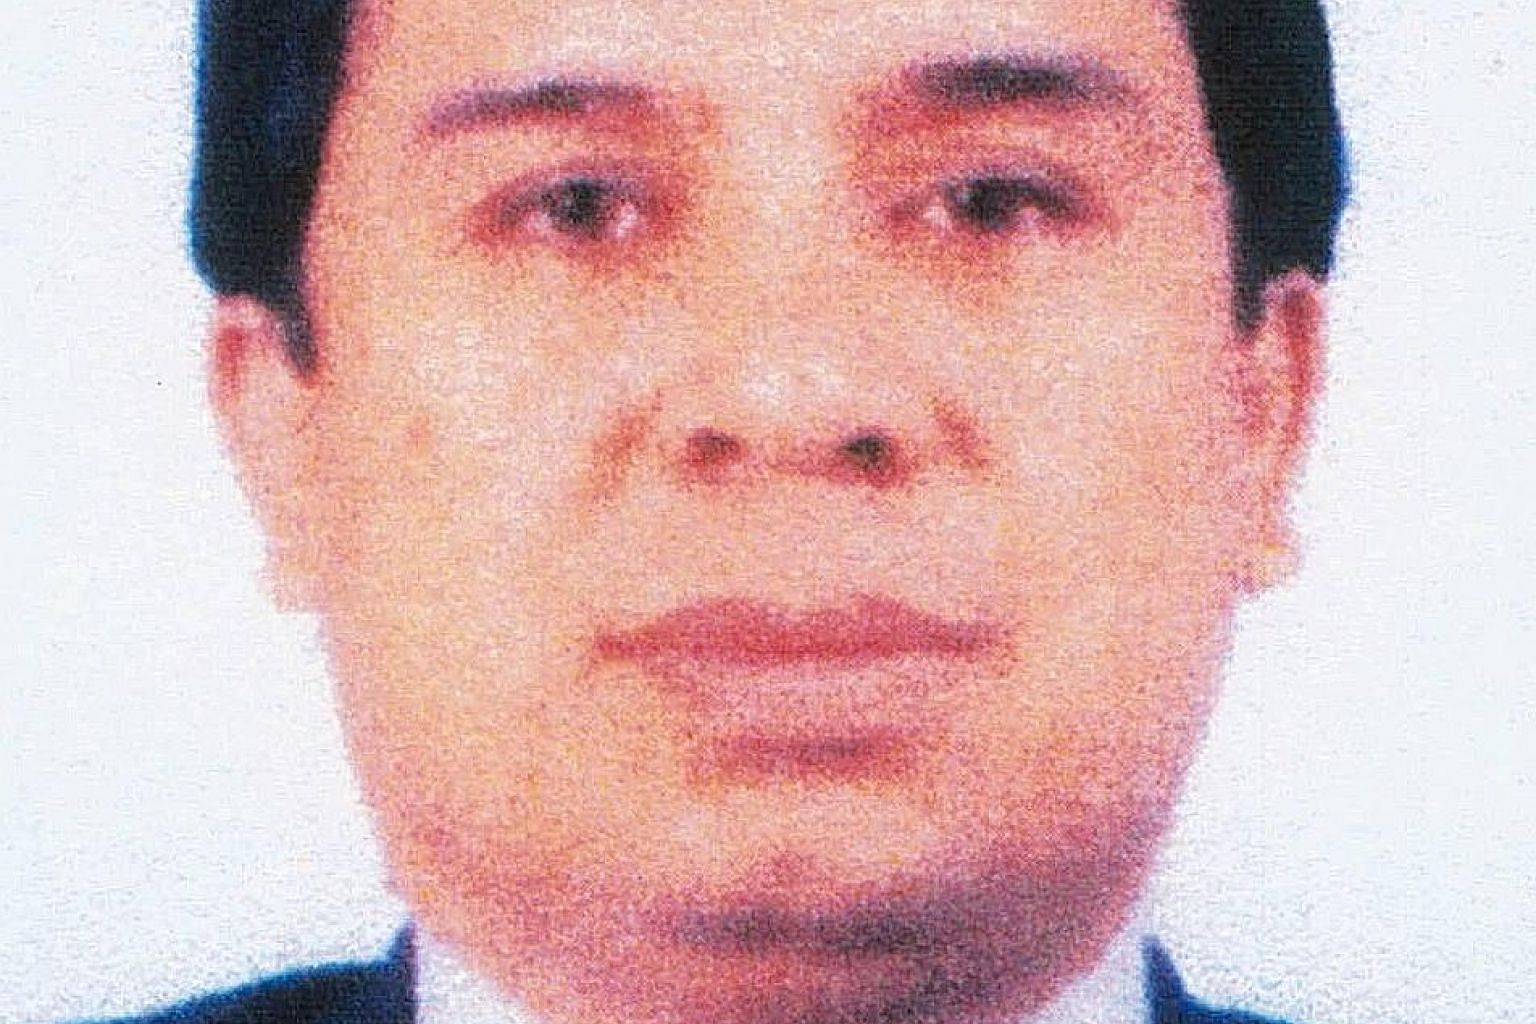 Terrorist inmate Hambali (above) was transferred to Guantanamo about 10 years ago, after he was captured in Bangkok in 2003.